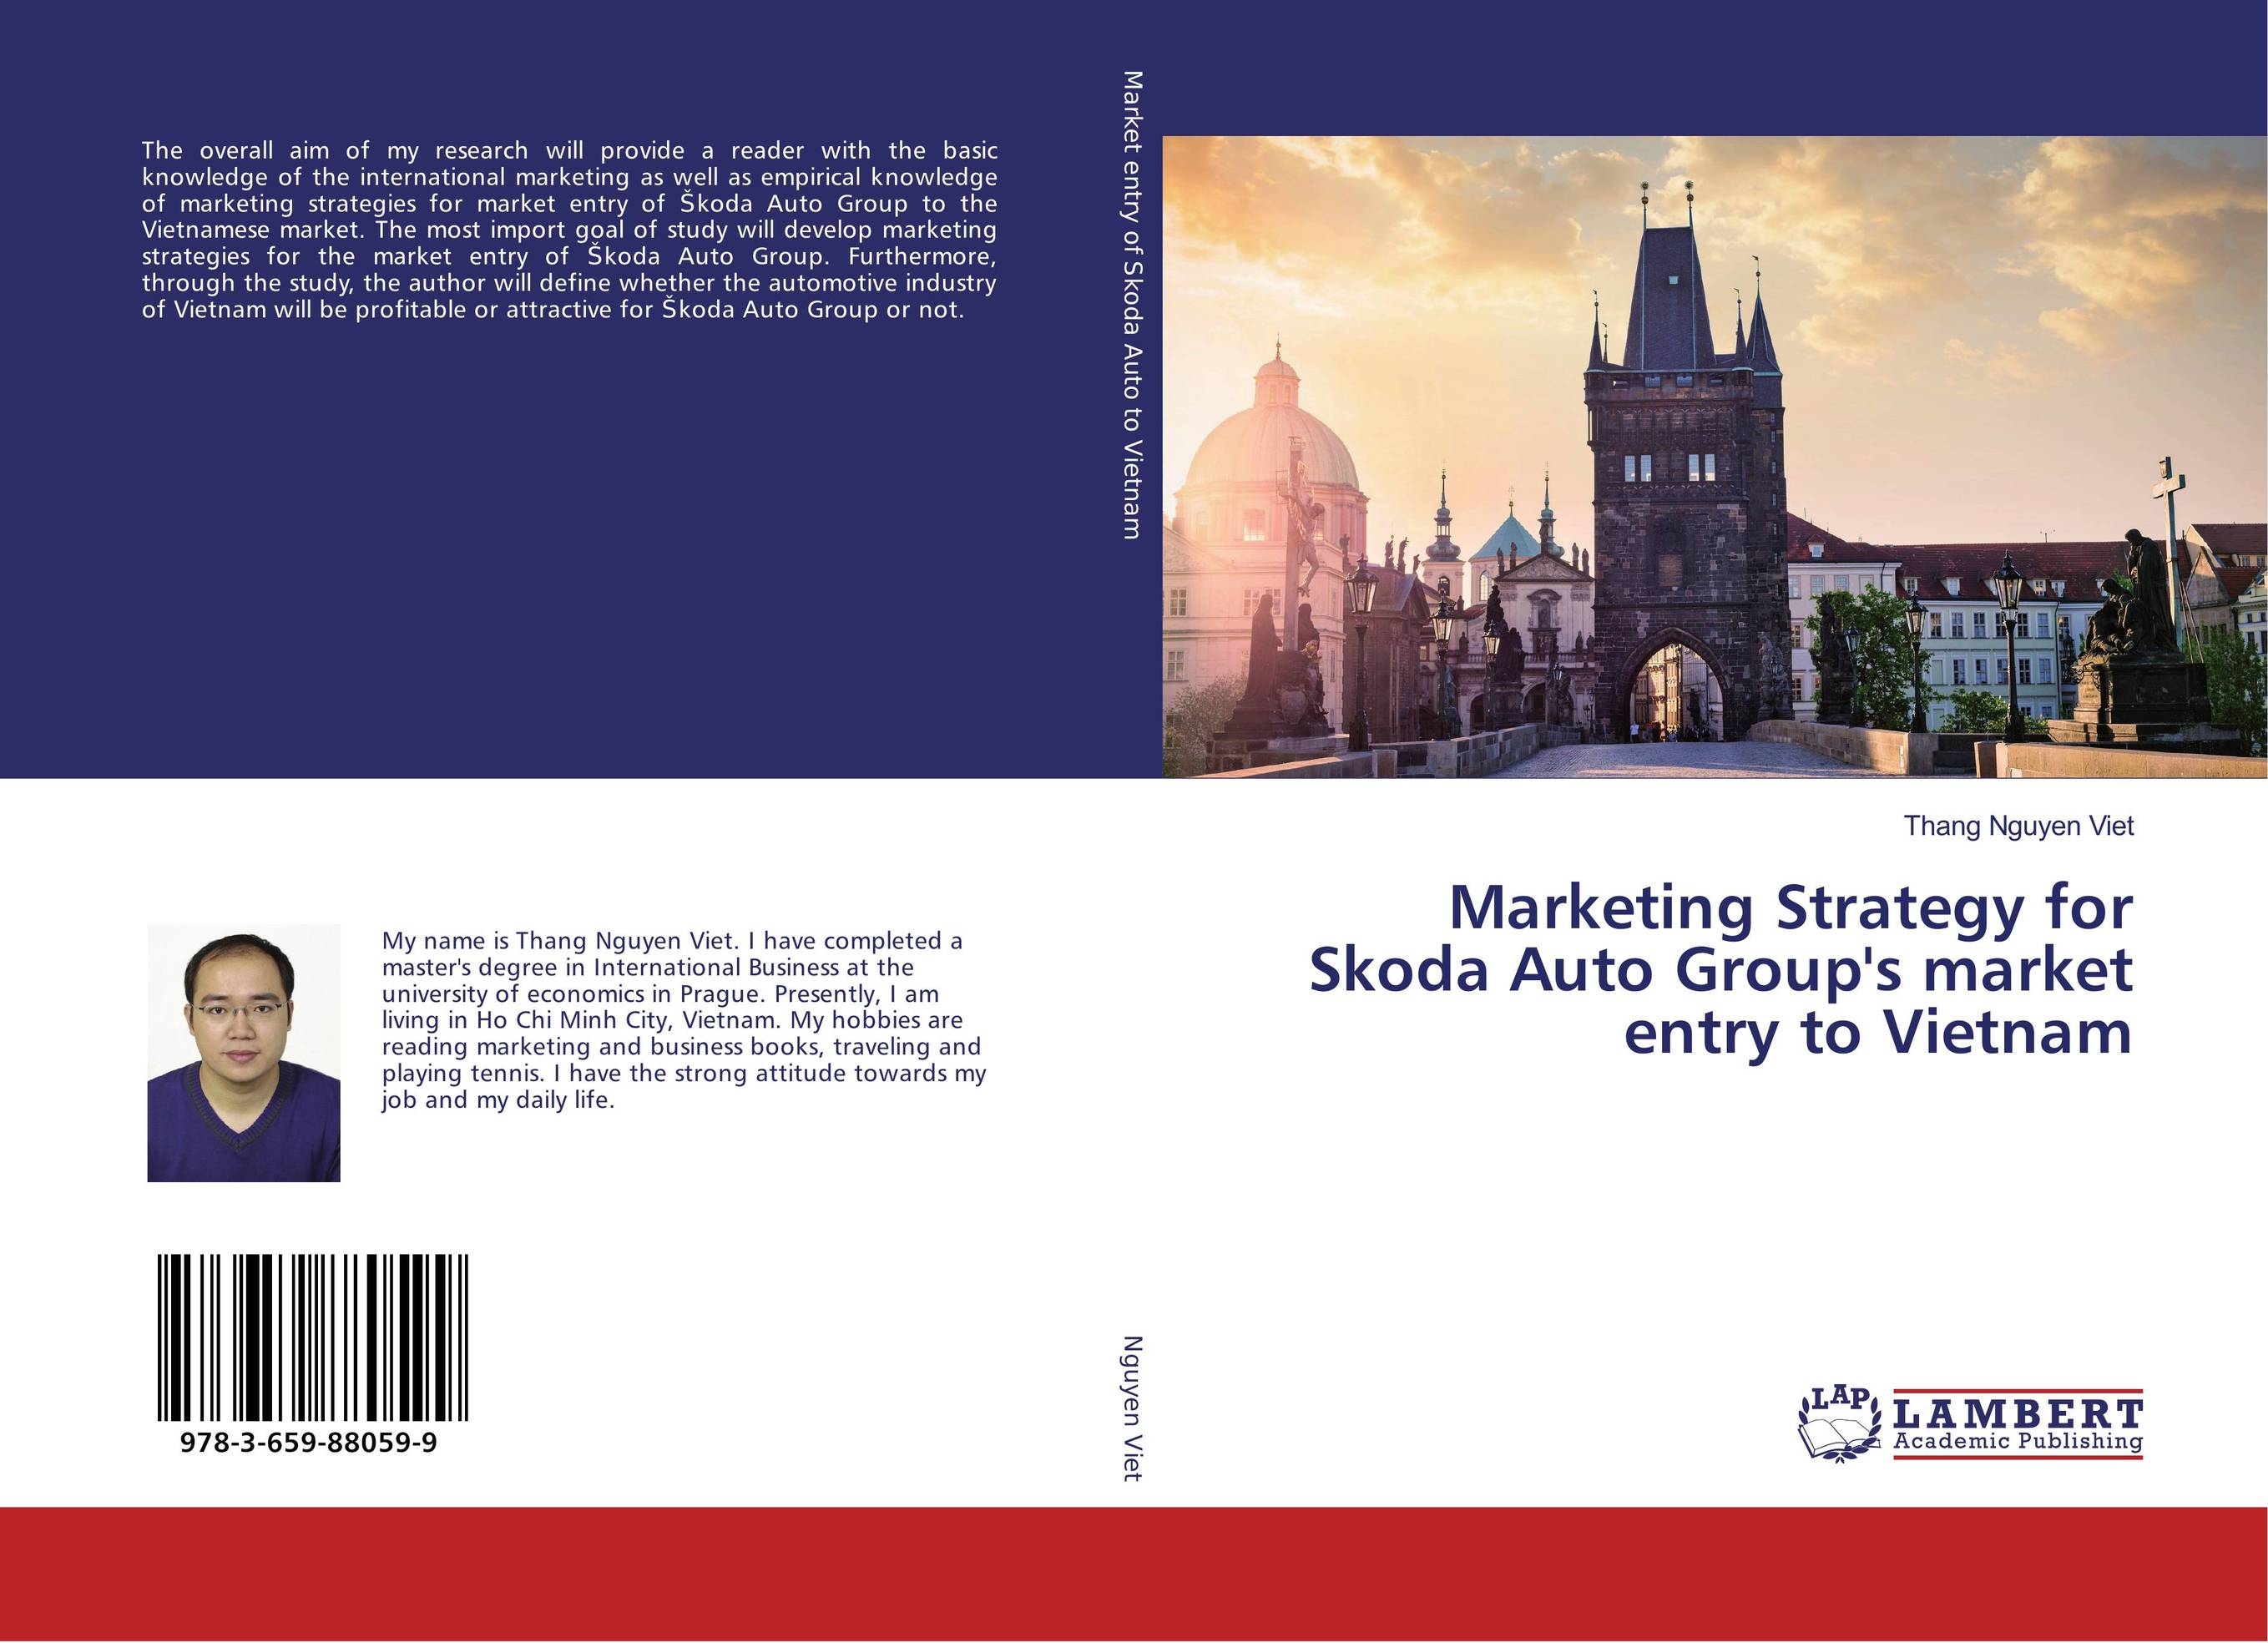 marketing communications on skoda Skoda has introduced a new brand and corporate identity as part of an overhaul of its marketing strategy aimed at giving the car marque a more modern image all internal and external communication will feature a new logo with the winged-arrow image now given more prominence marketing materials will.